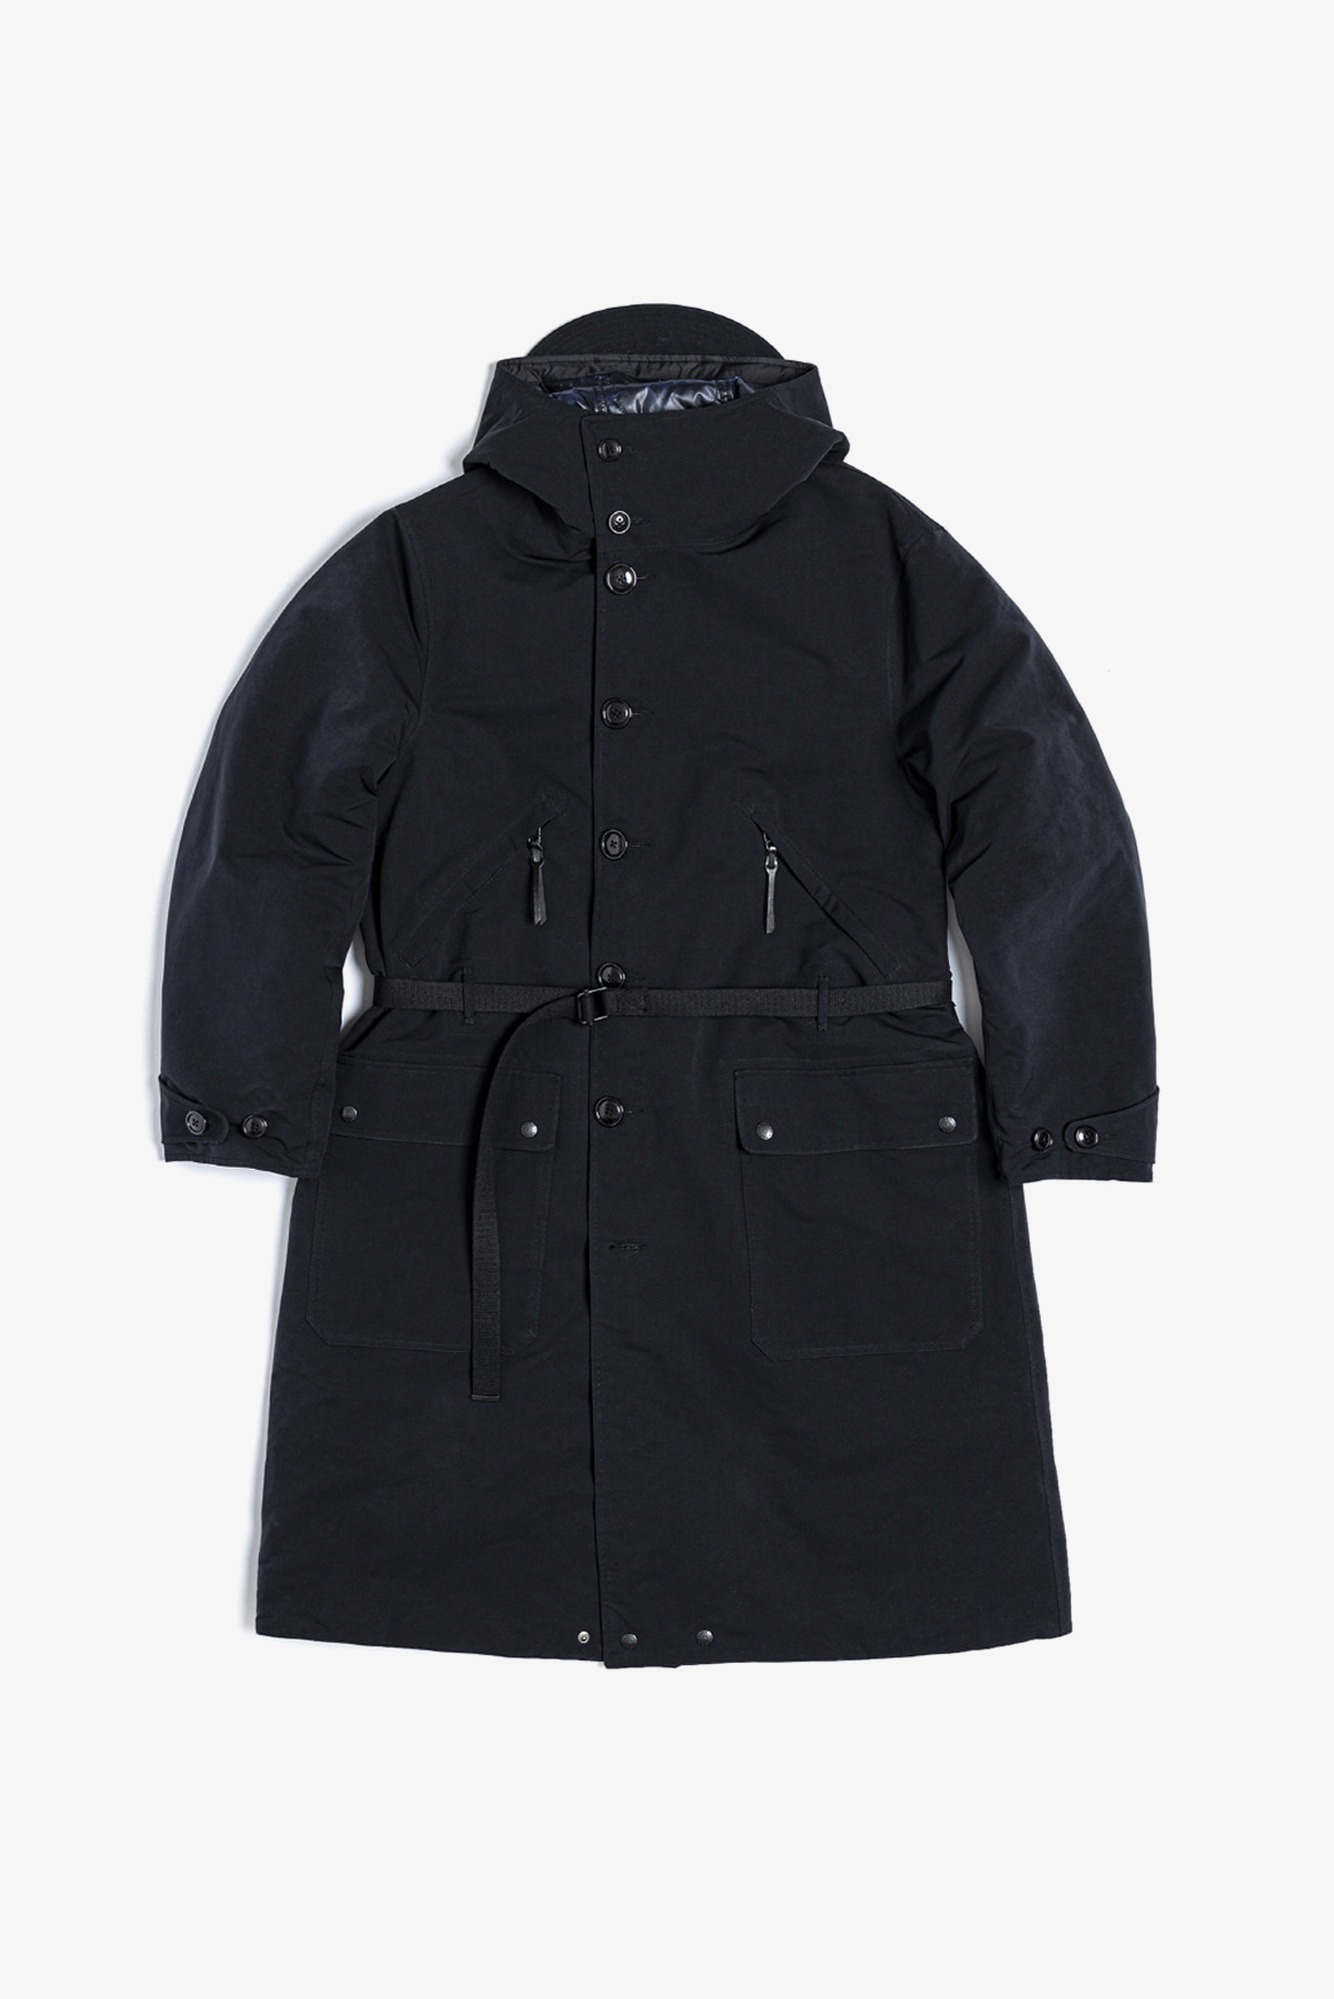 "EASTLOGUE Reversible Mountain Coat ""Black & Navy Check"""